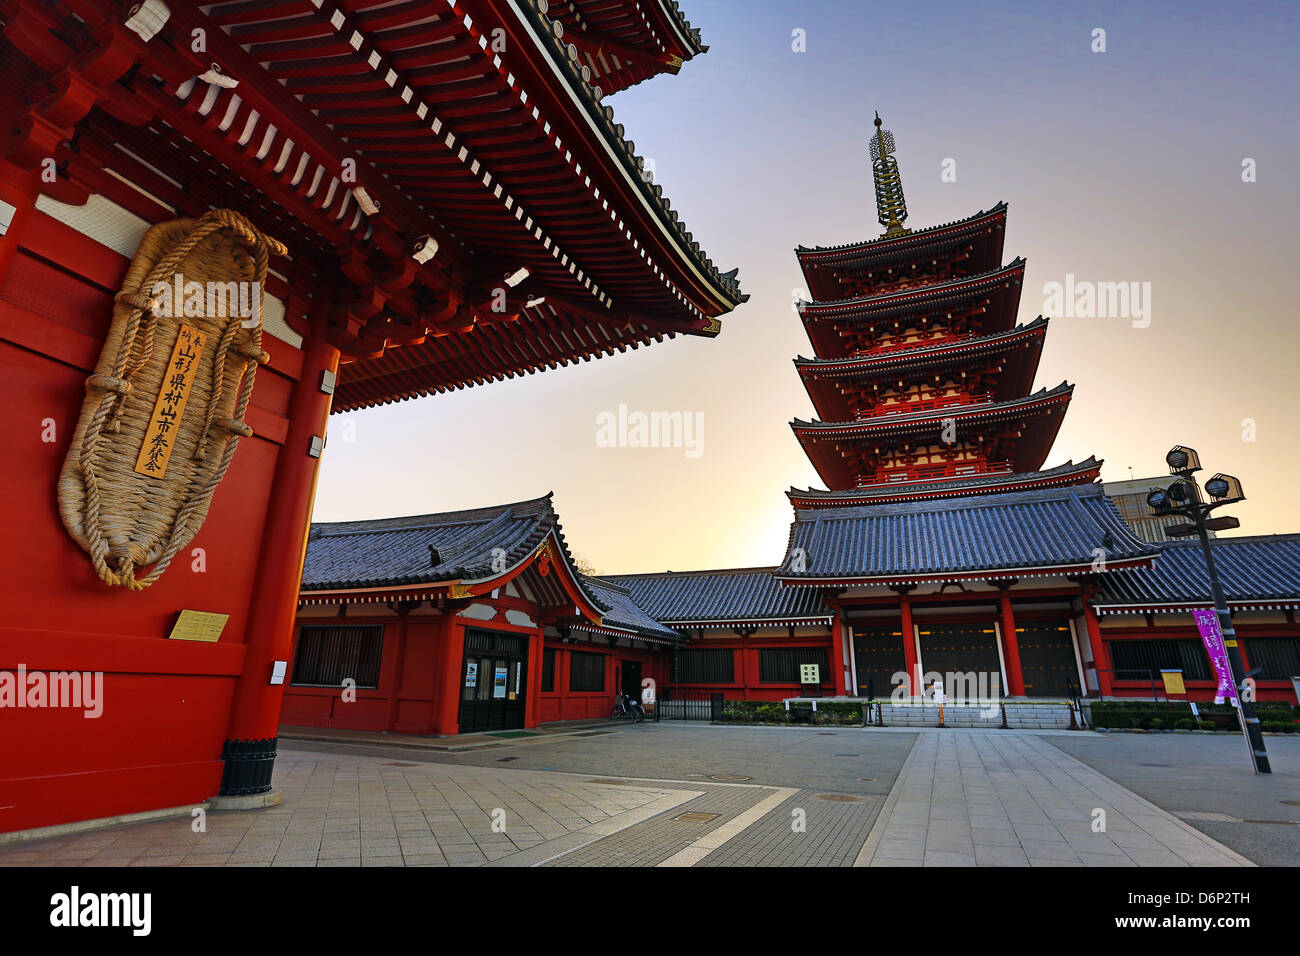 Japanese Pagaoda silhouette at sunset at the Sensoji Asakusa Kannon Temple, Tokyo, Japan - Stock Image